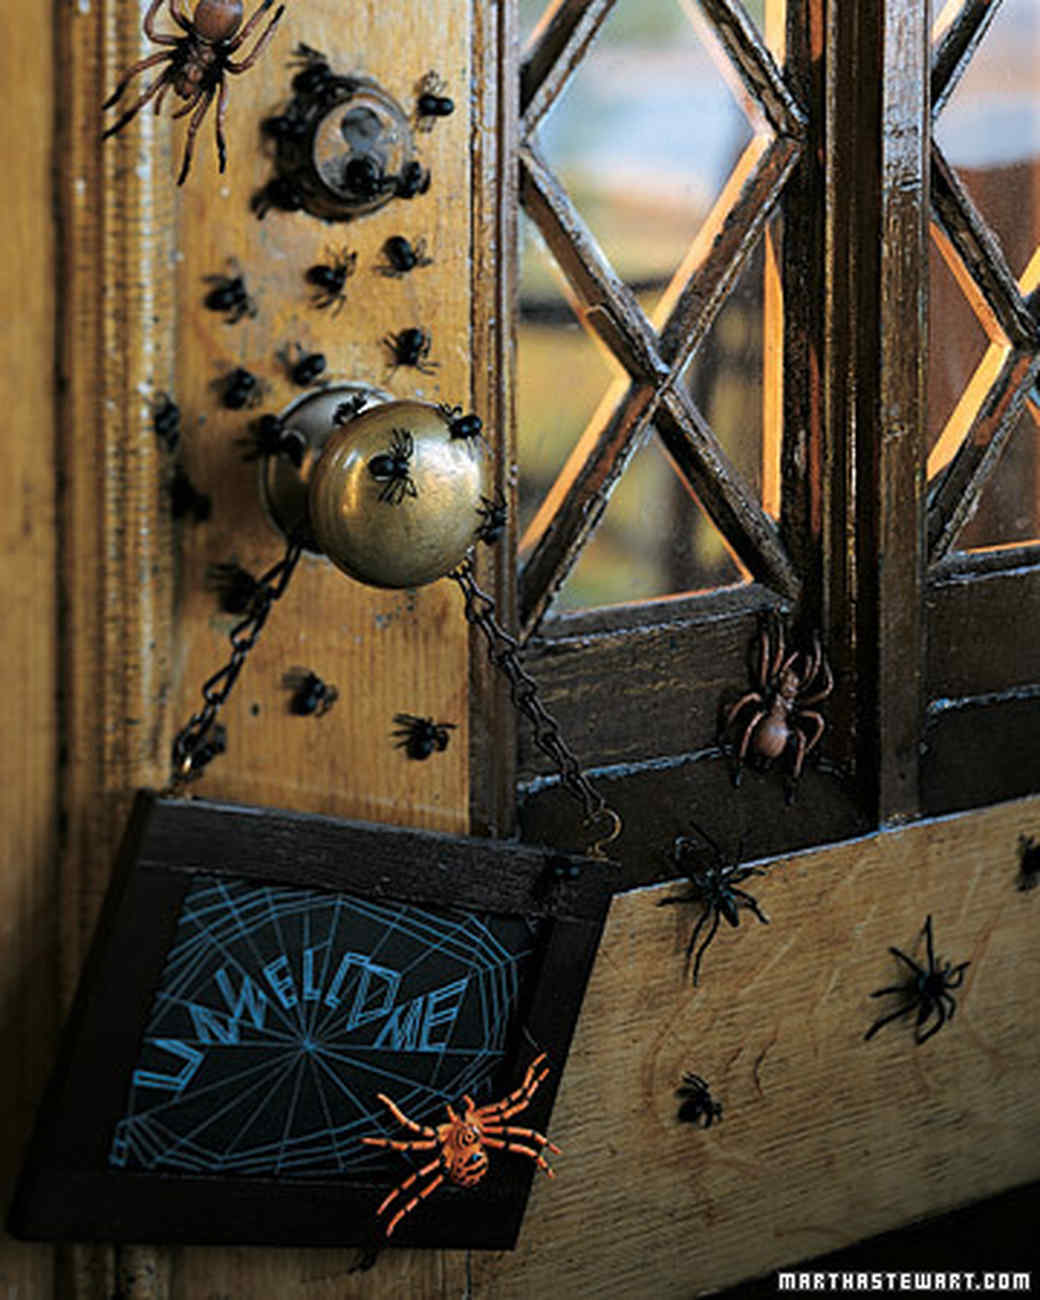 Spooky Porches: Spiders